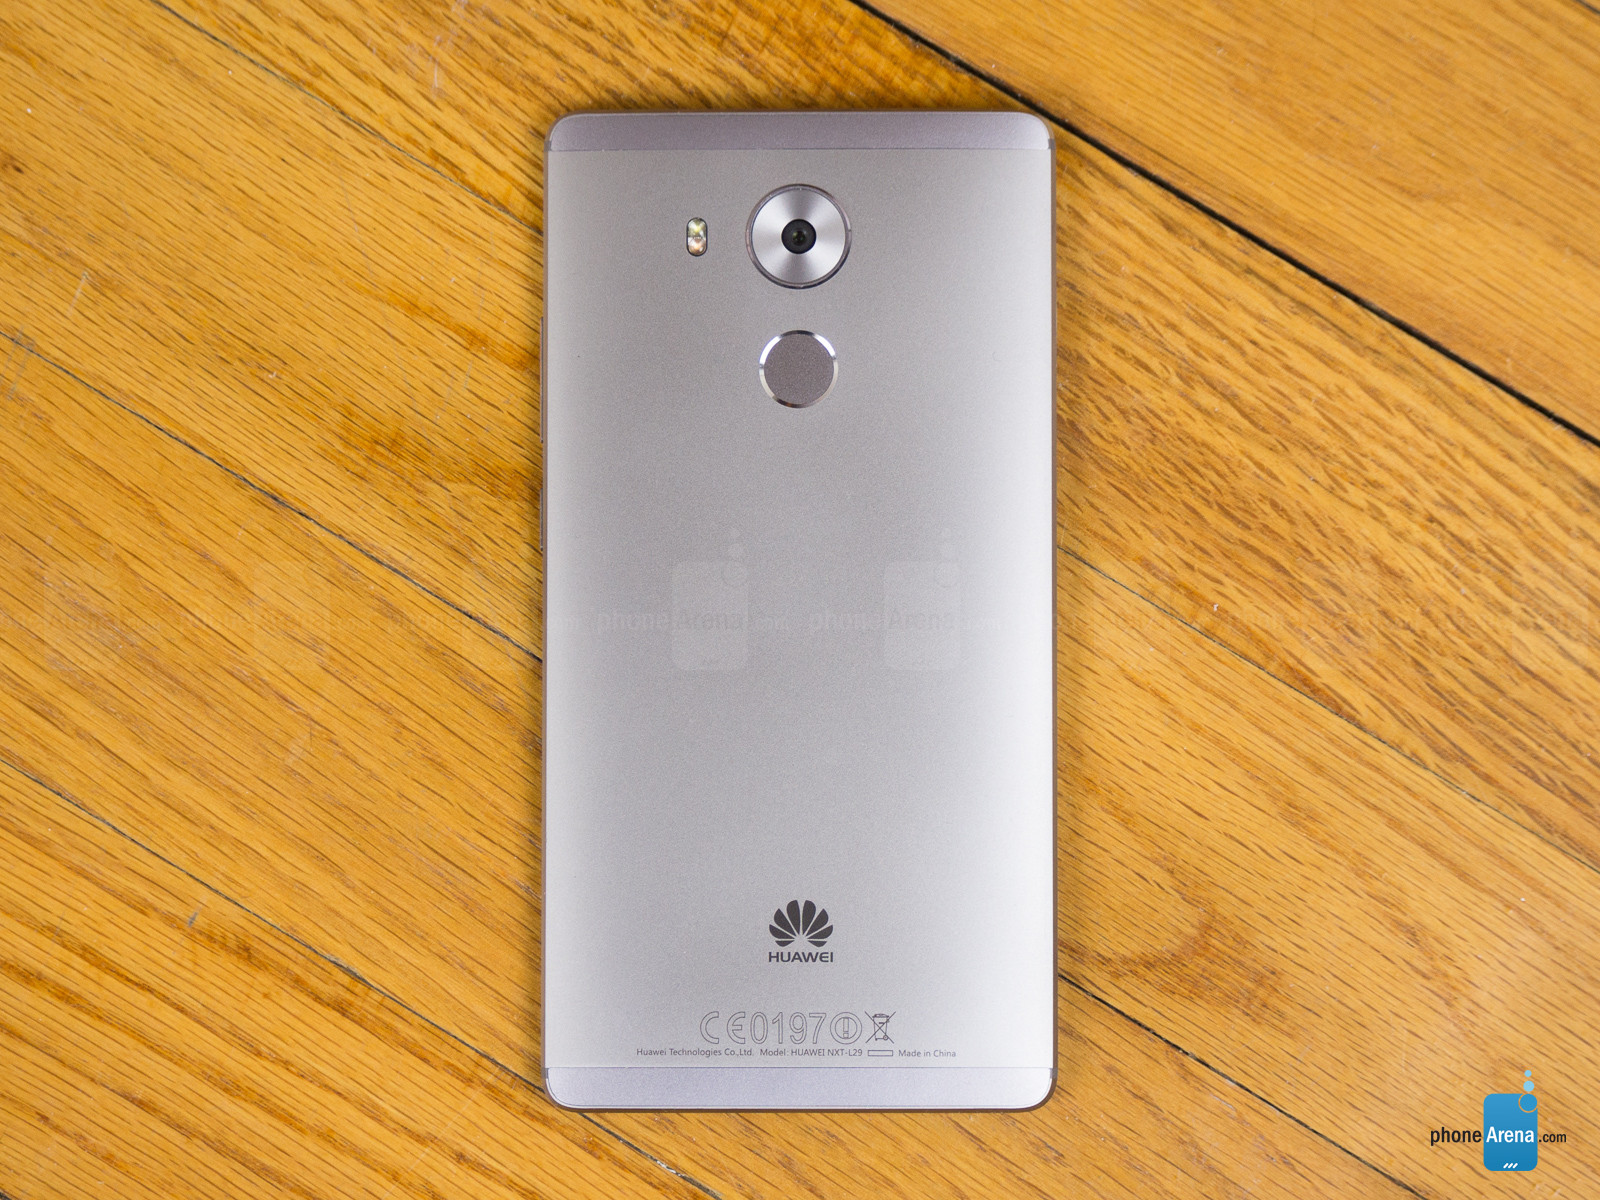 Huawei-Mate-8-Review-002